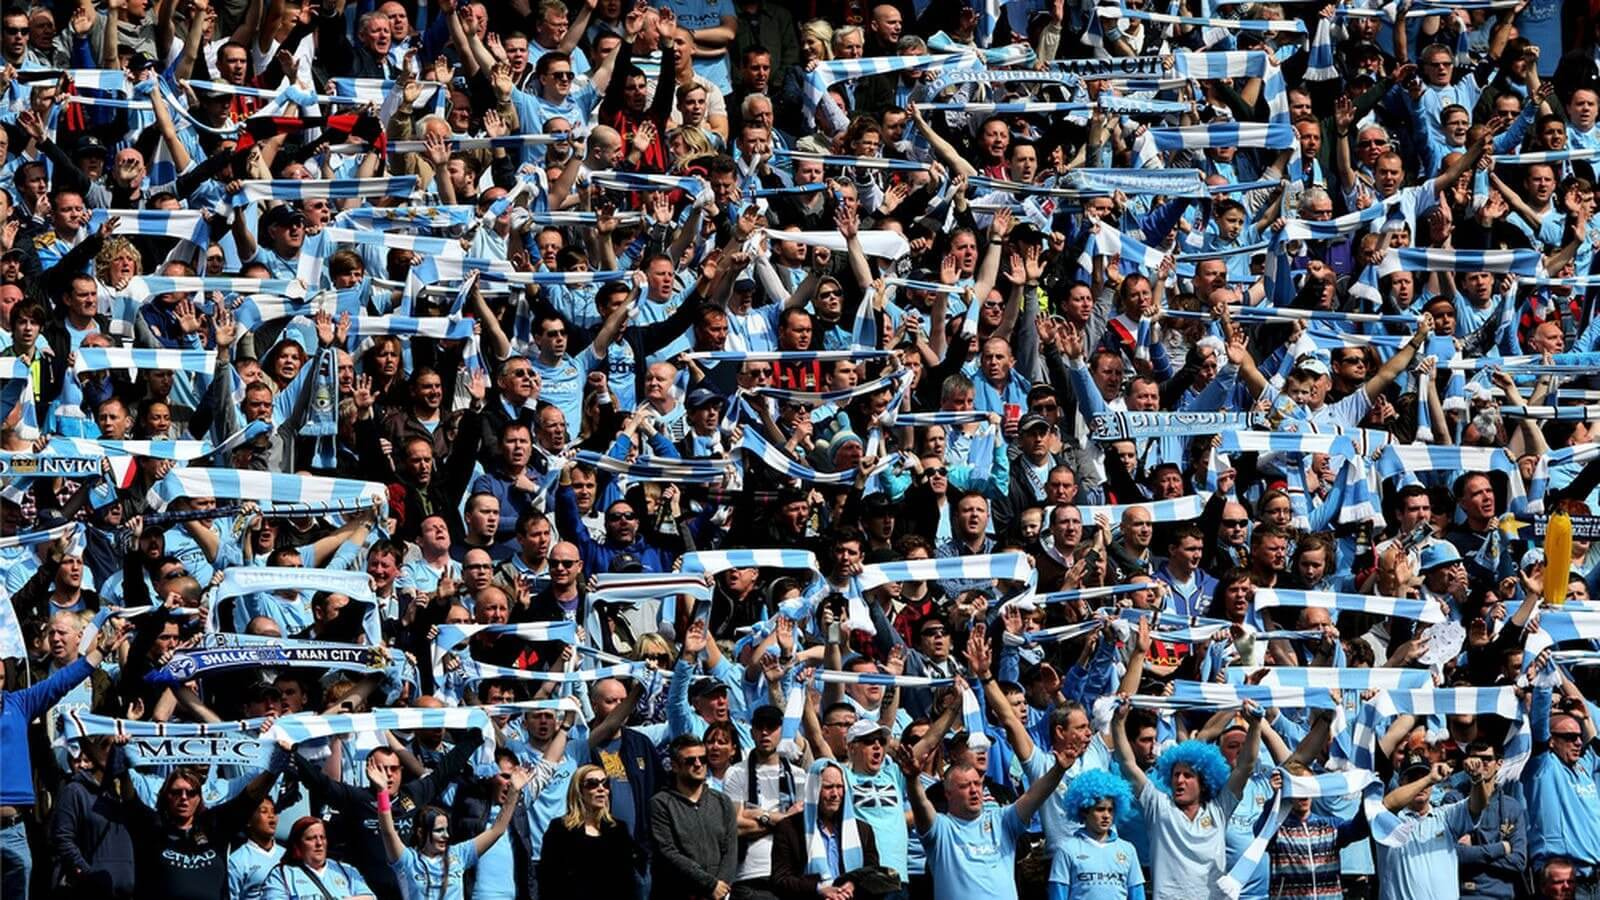 Pep Guardiola urged Man City fans to attend games